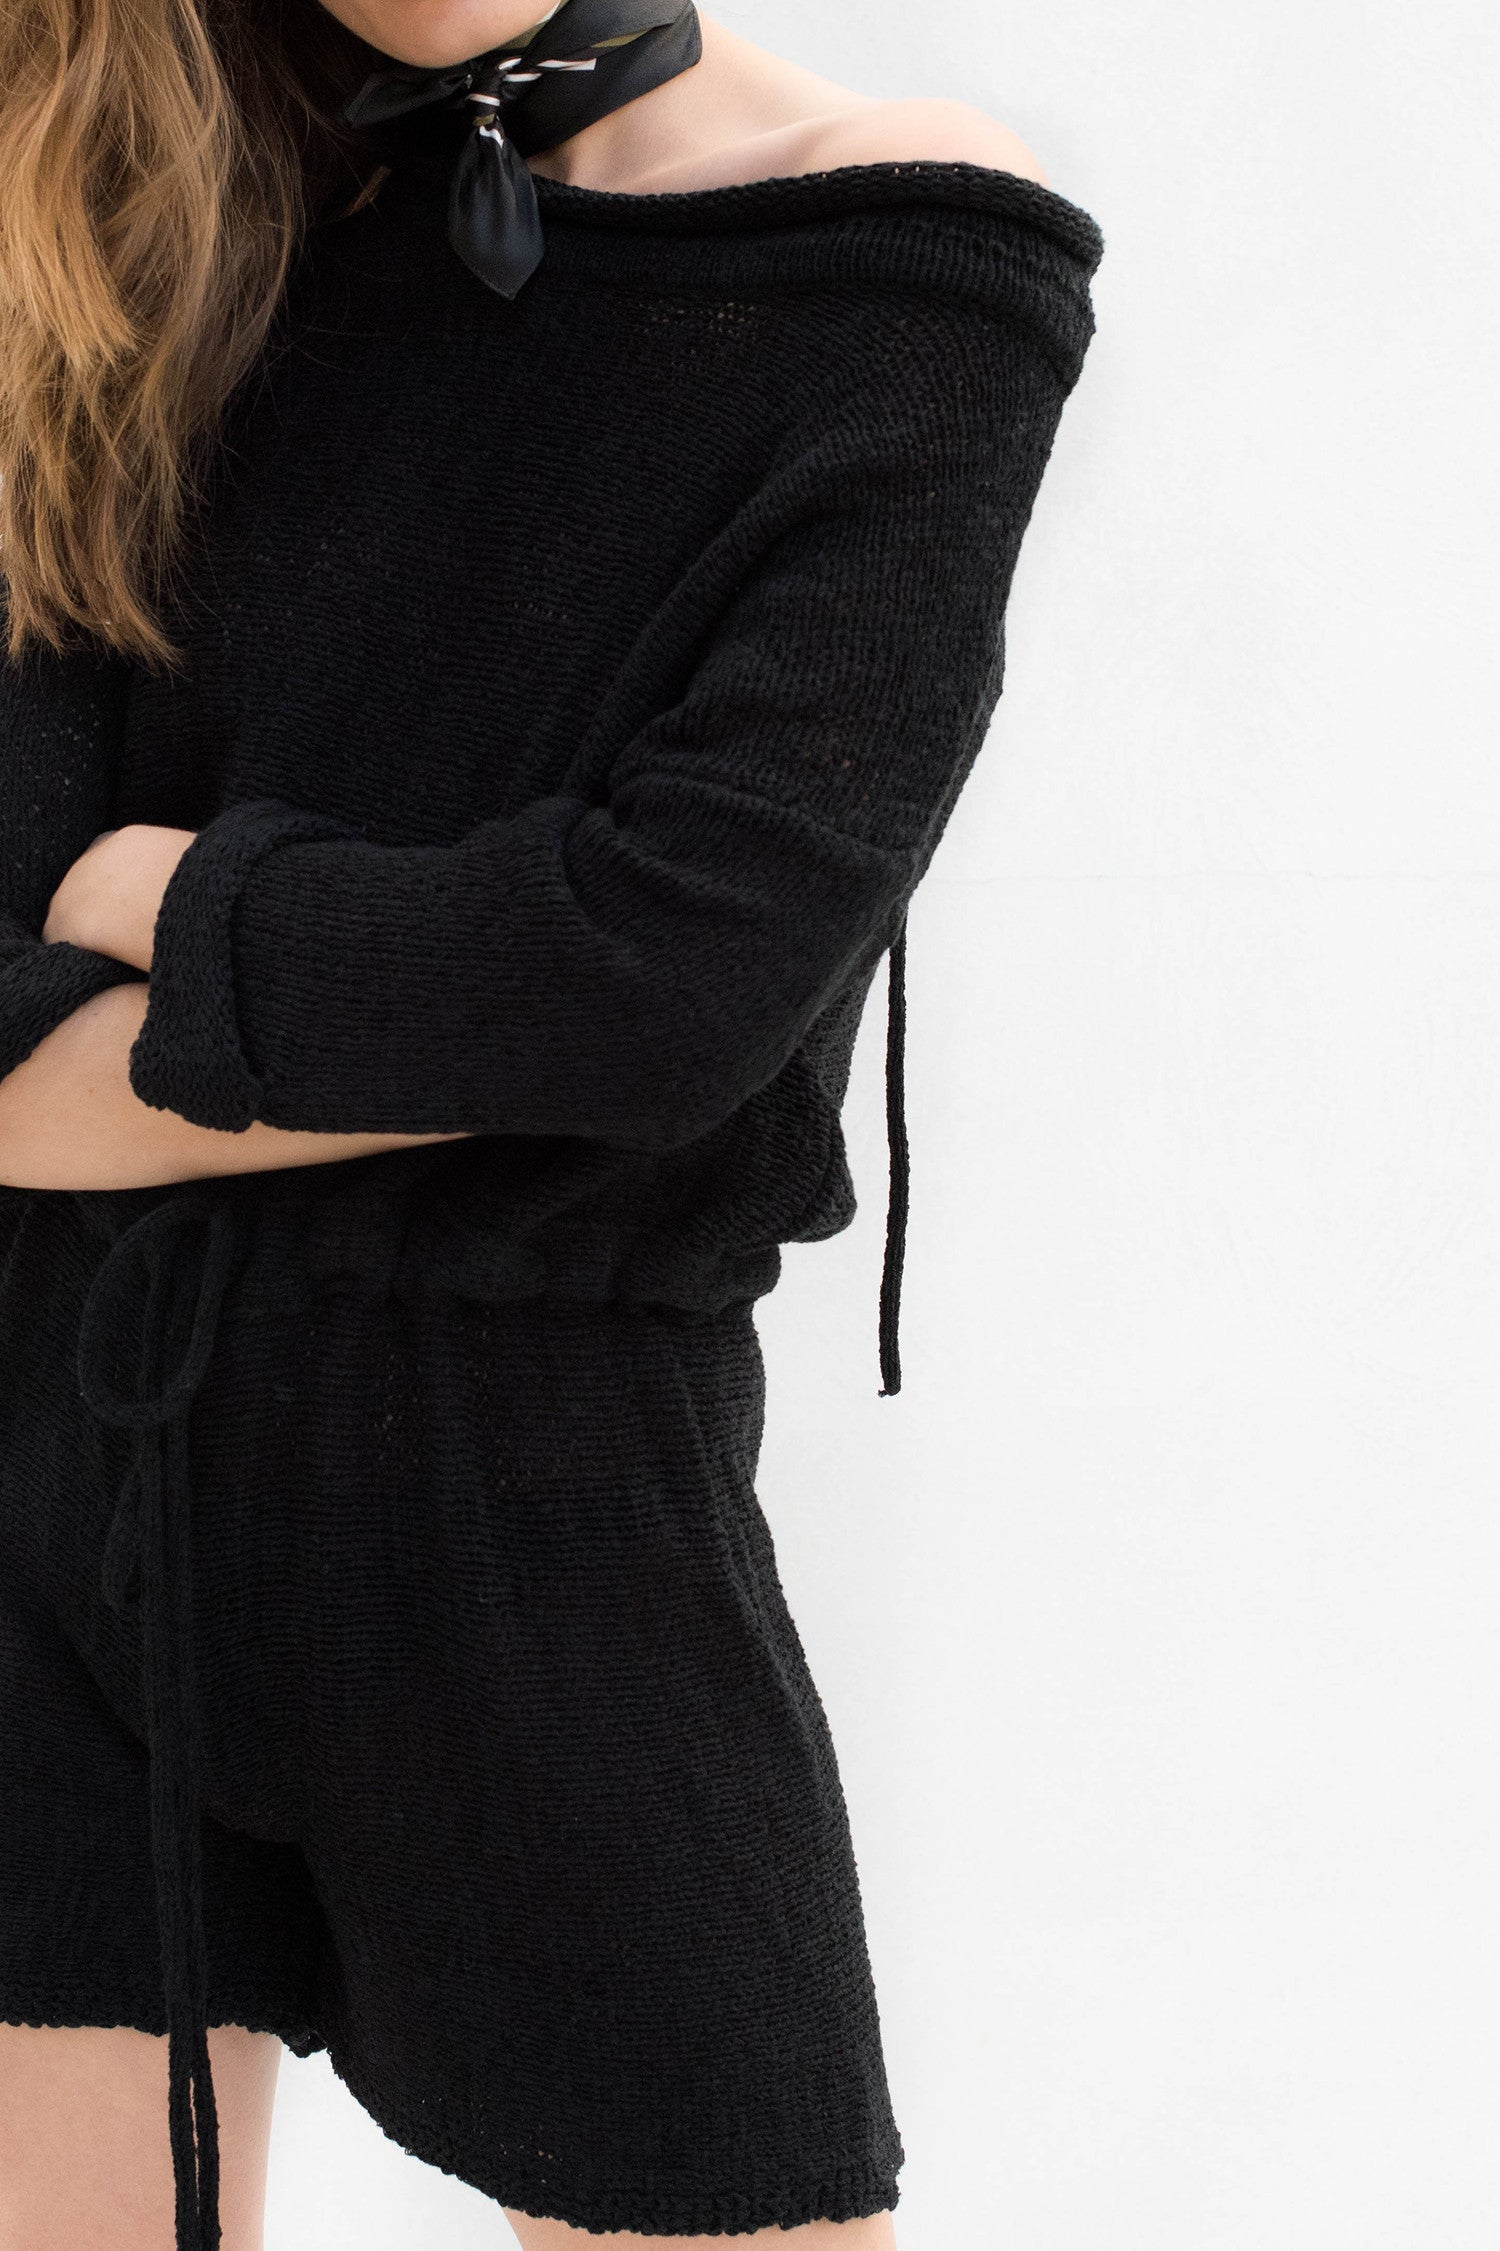 Shipwreck Knit Playsuit - Black - Style Addict